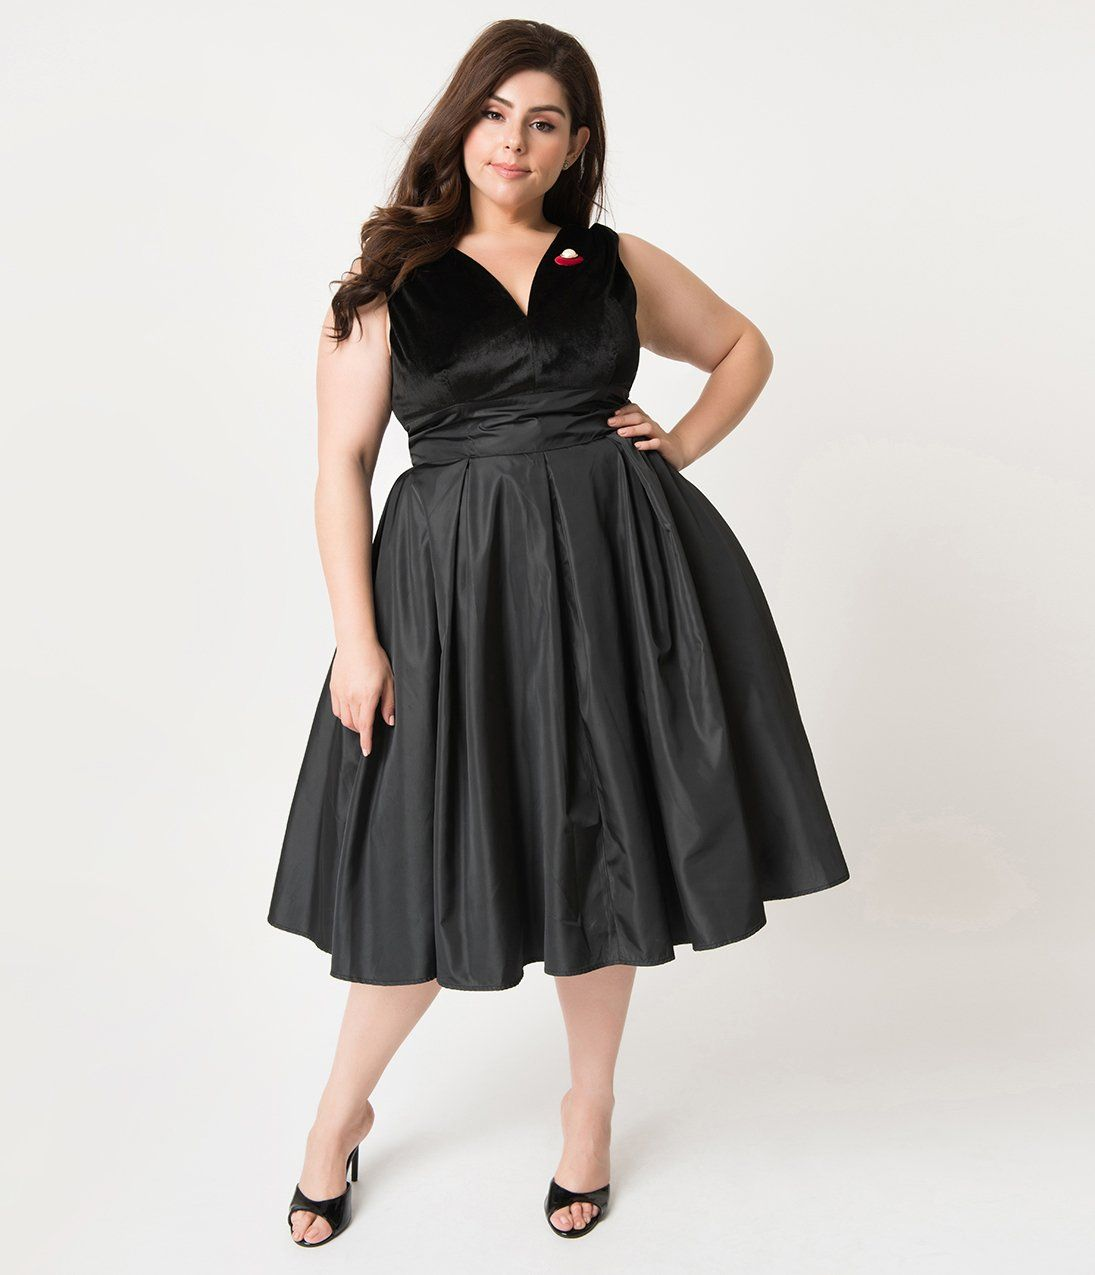 1950s Plus Size Fashion And Clothing History Cocktail Dress Vintage 1950s Cocktail Dress Vintage Inspired Cocktail Dress [ 1275 x 1095 Pixel ]